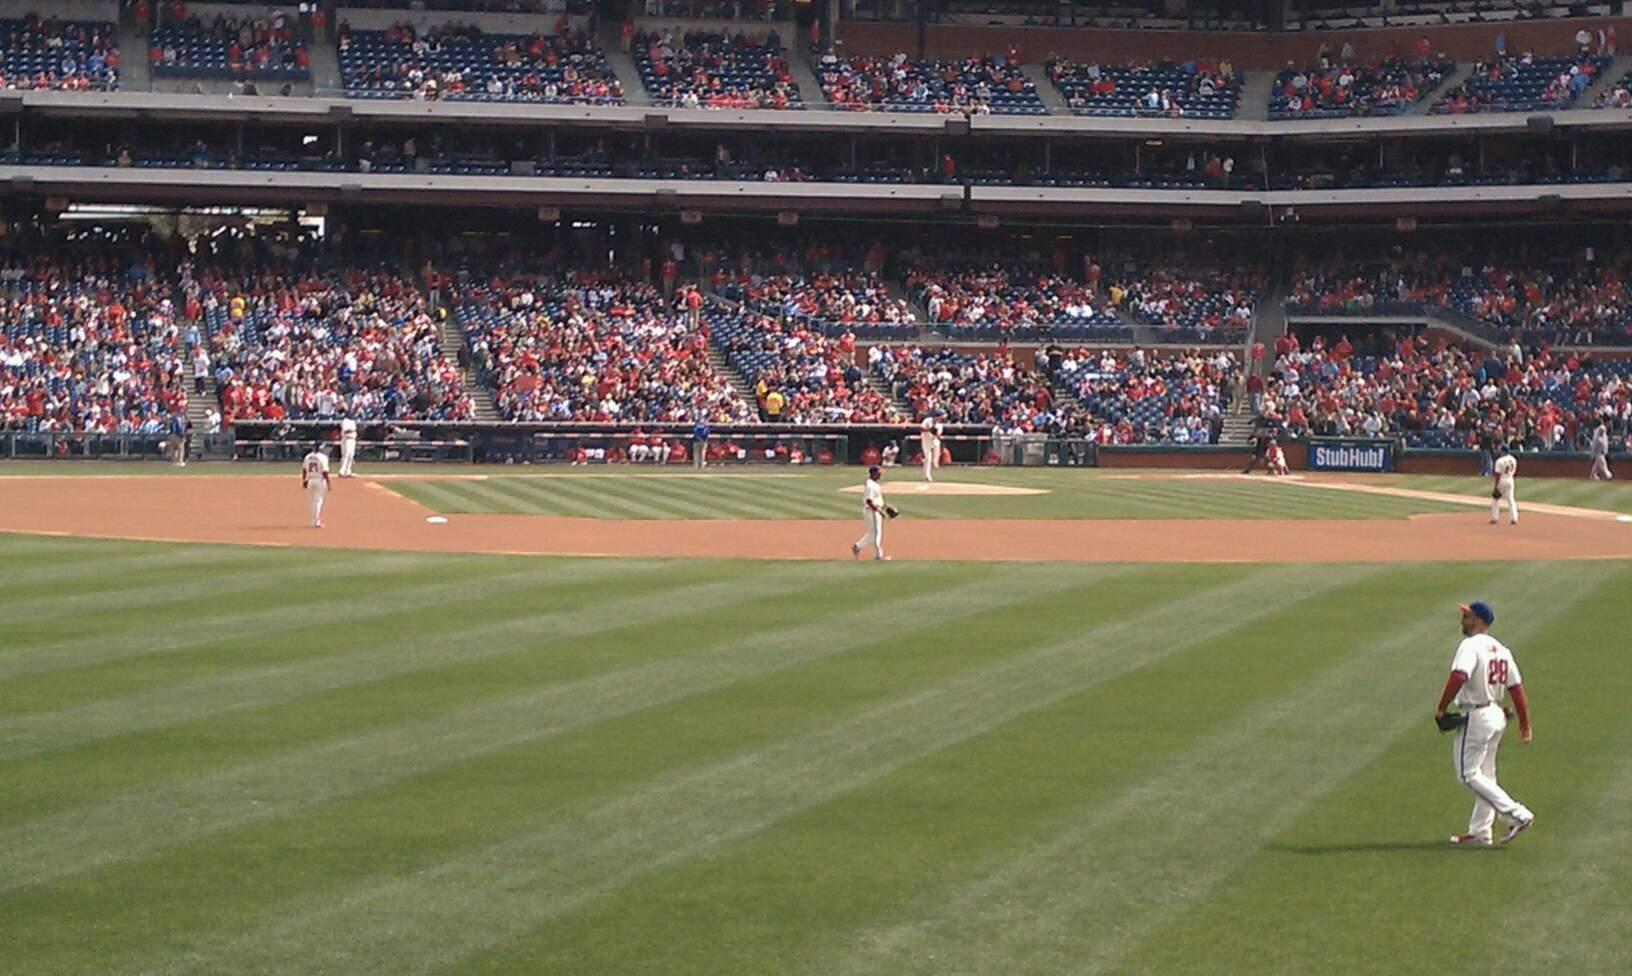 Citizens Bank Park Section 144 Row 1 Seat 5